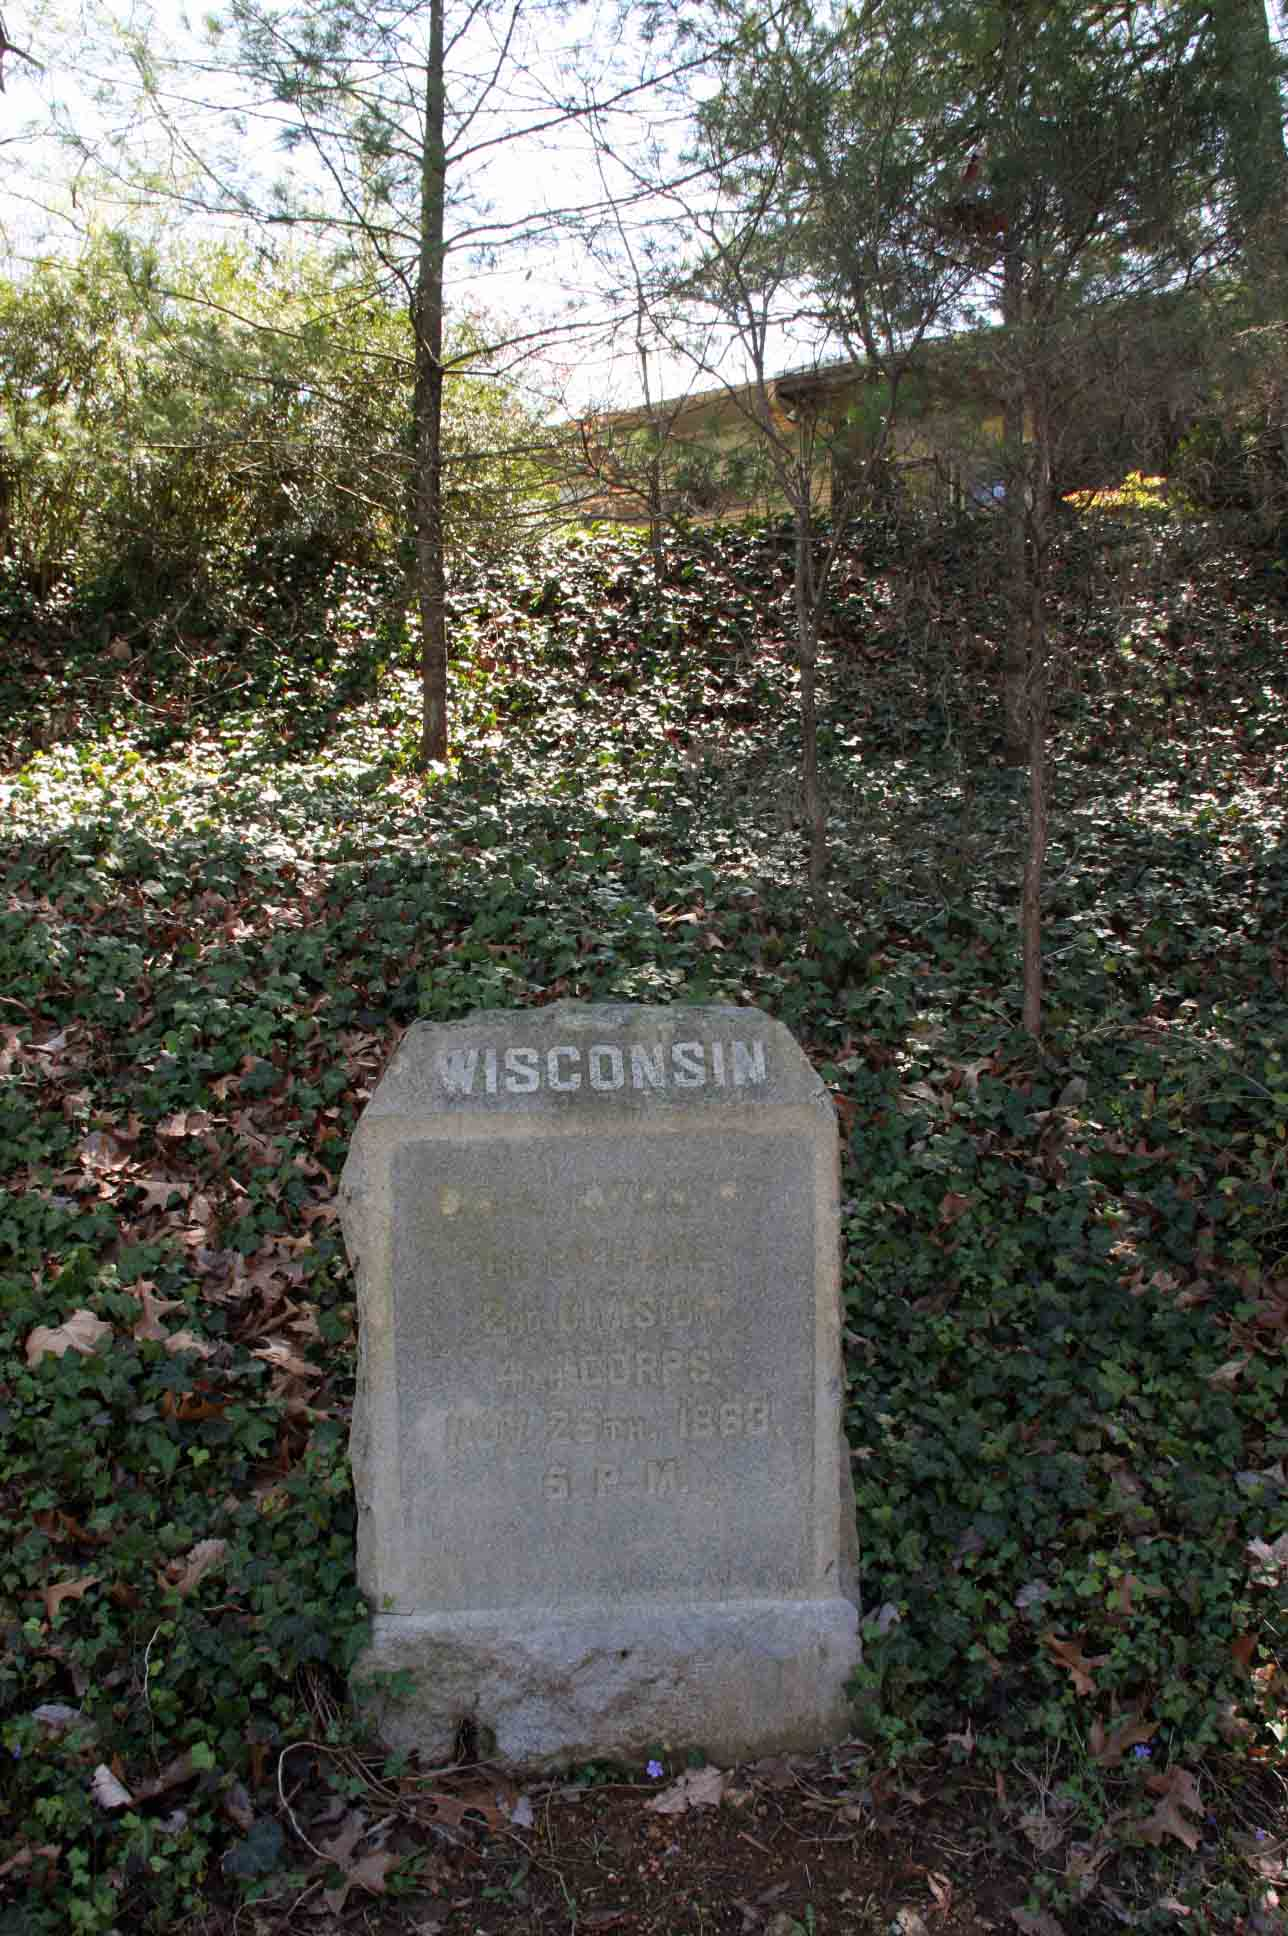 24th Wisconsin Infantry Regiment Marker, click photo to enlarge.